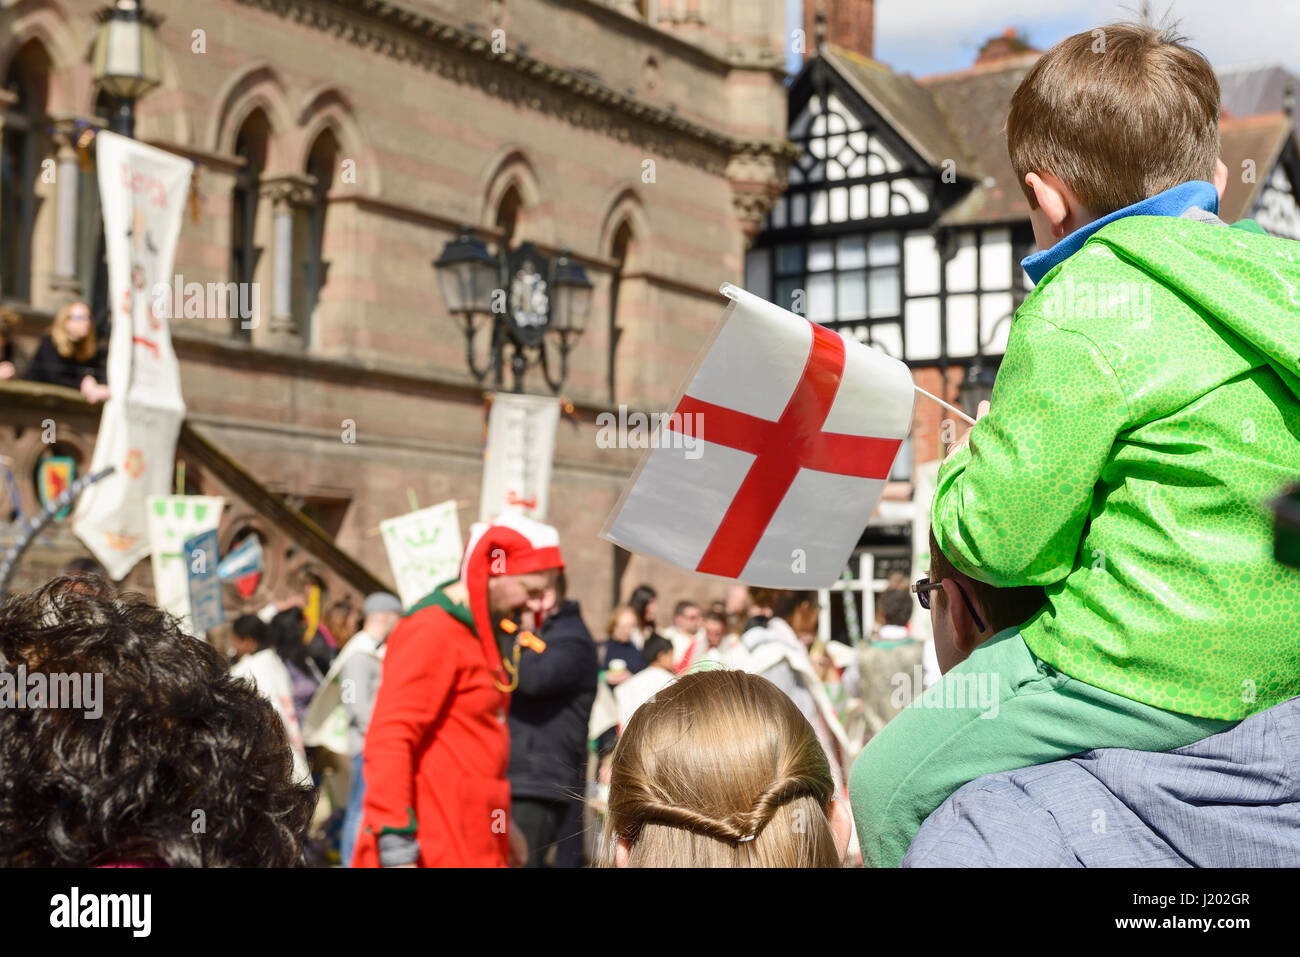 Chester, UK. 23rd April 2017. A boy with a flag watching the St George's day medieval street theatre performance - Stock Image